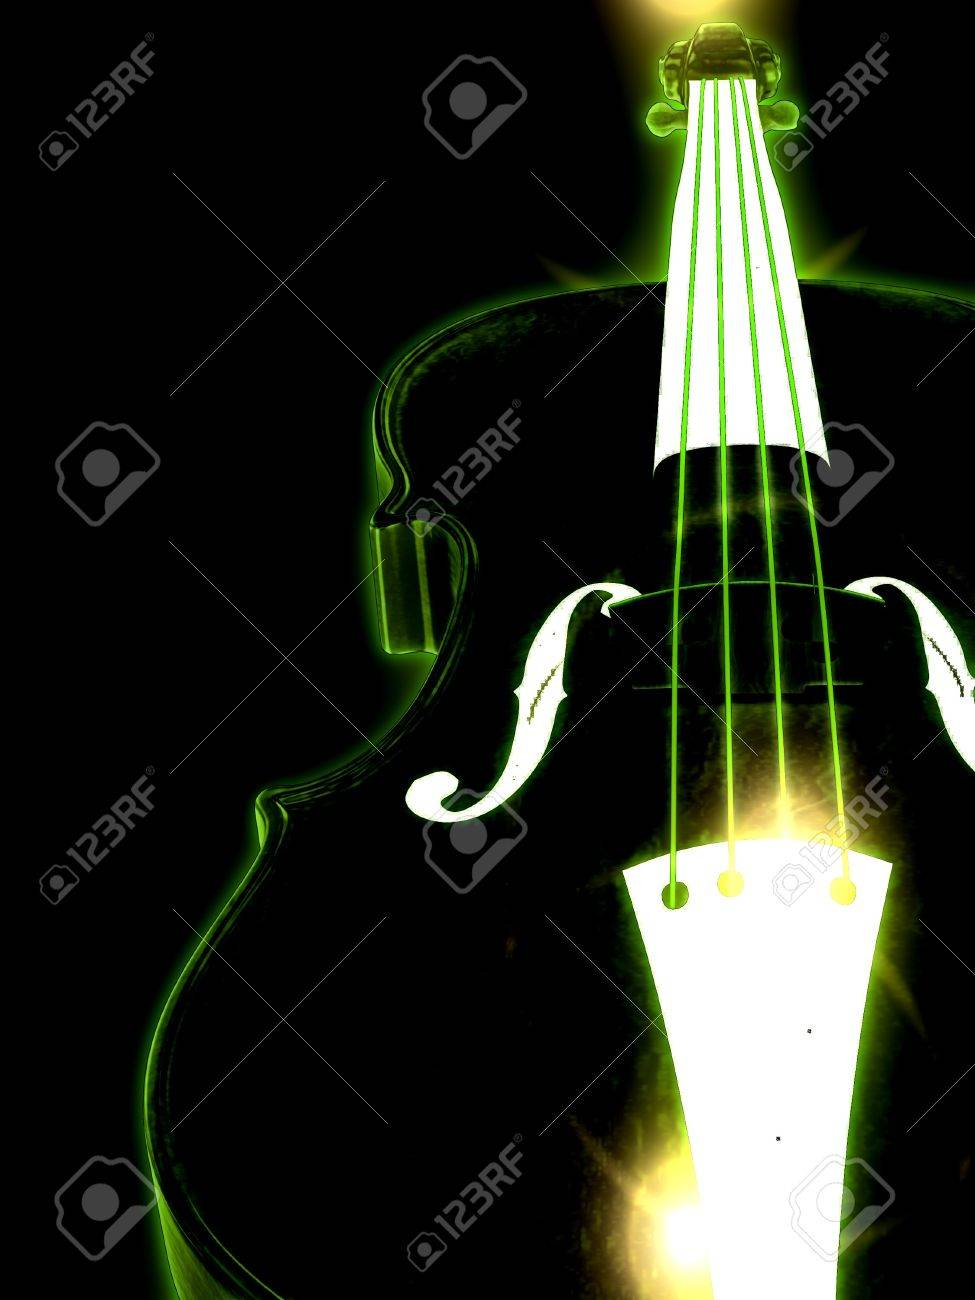 Abstract glowing 3d violin over black background. Stock Photo - 19429766